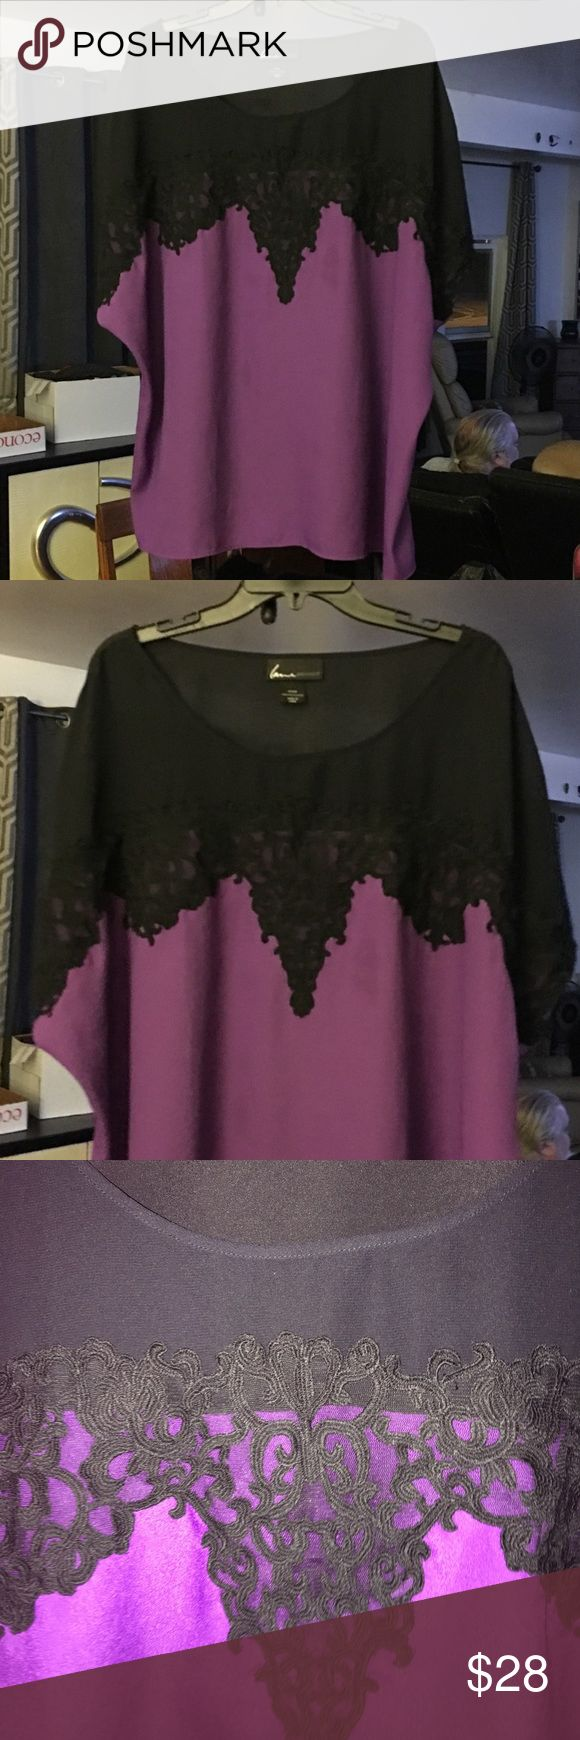 """Lane Bryant Size 26/28 Purple & Black Lace Top! This is a exquisite top! The black lace that adorns this top is stunning! These two color's together just add more and more to this top. This top has dolman short sleeves, so they have that """"capped"""" look to cover up just what we want! You can't lose with this beauty! 🌹 Lane Bryant Tops"""